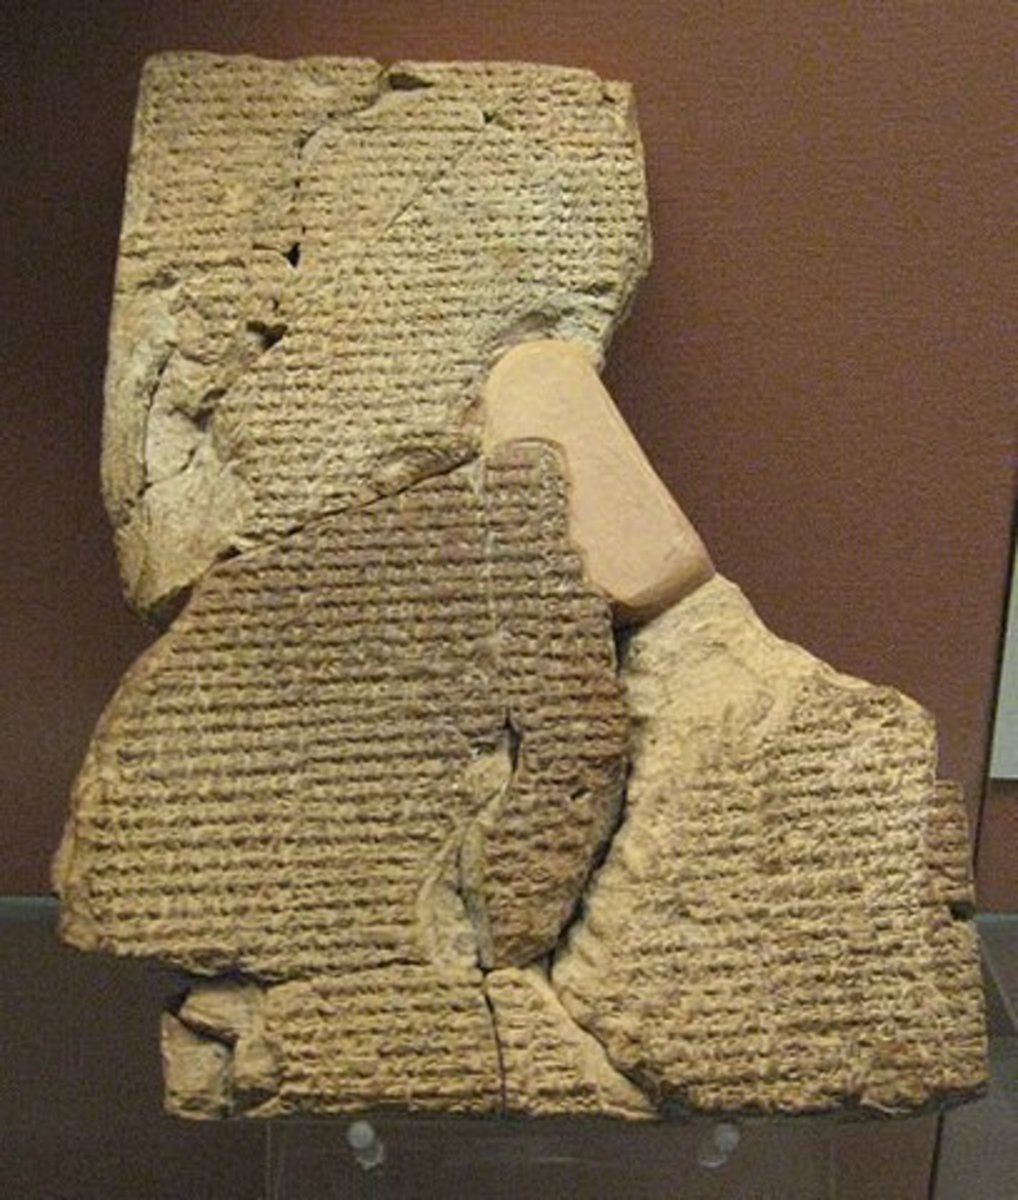 The epic of Atrahasis was written on clay tablets in the cuneiform writing style of Sumer.